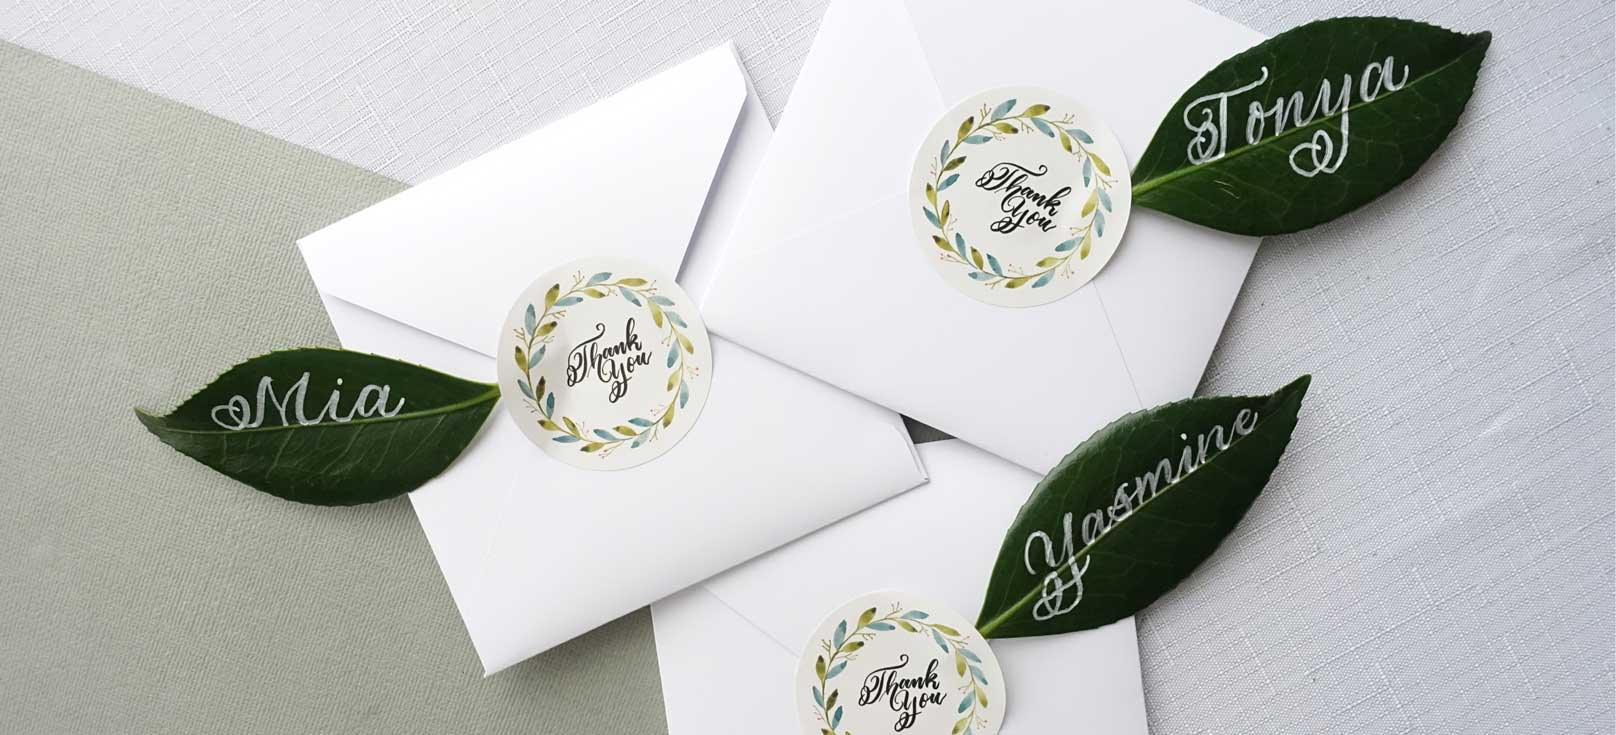 Leaf place cards with calligraphy names